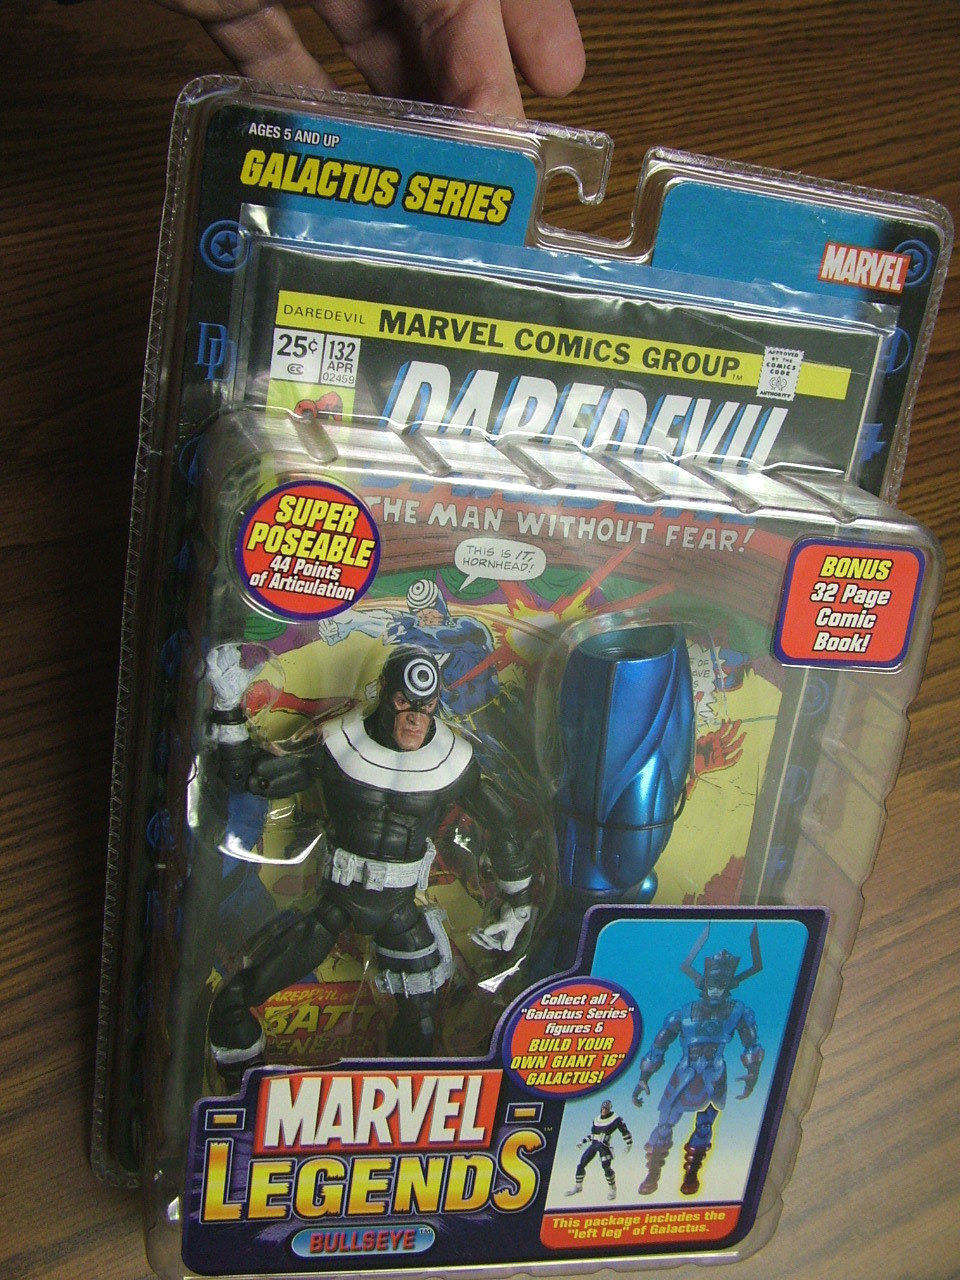 Marvel Legends  Bullseye w  44 points of articulation - Galactus Series + comic